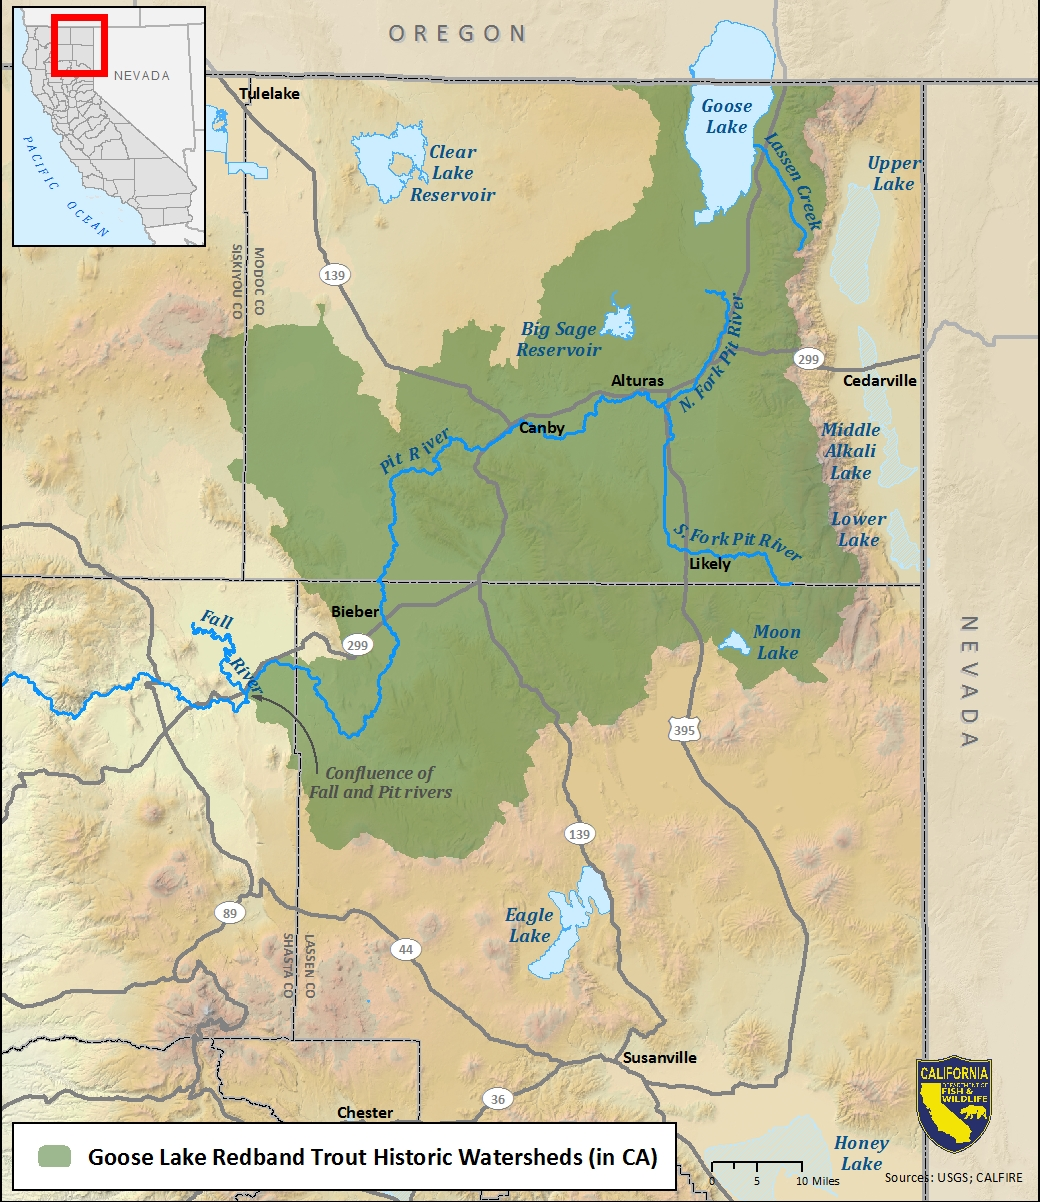 Map of Goose Lake redband trout historic watersheds-link opens in new window